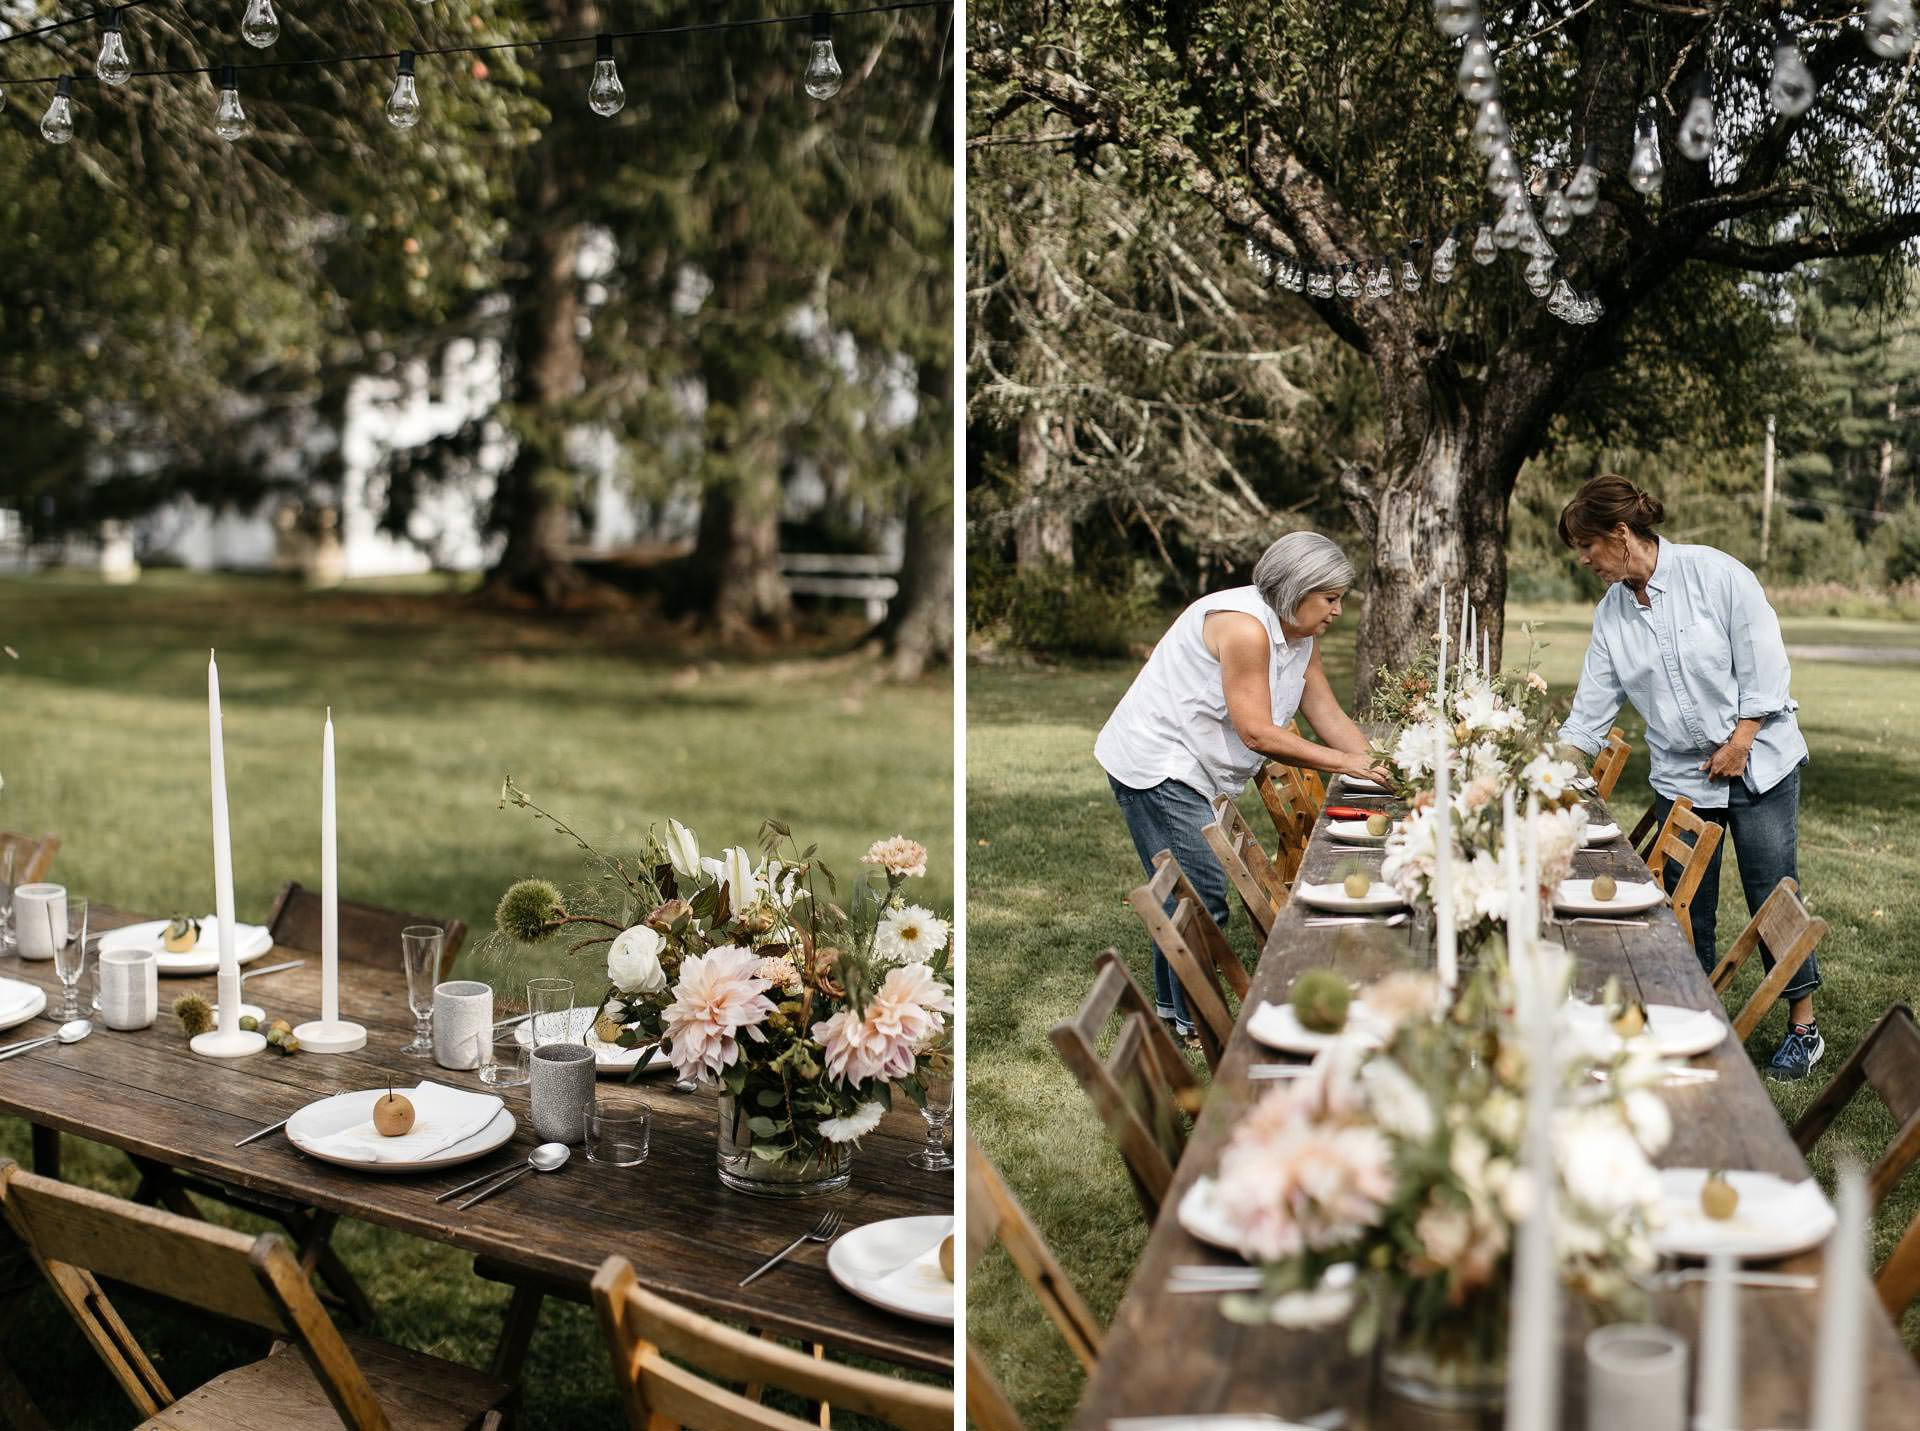 Floating FarmHouse Intimate Wedding in Upstate New York by Jean-Laurent Gaudy